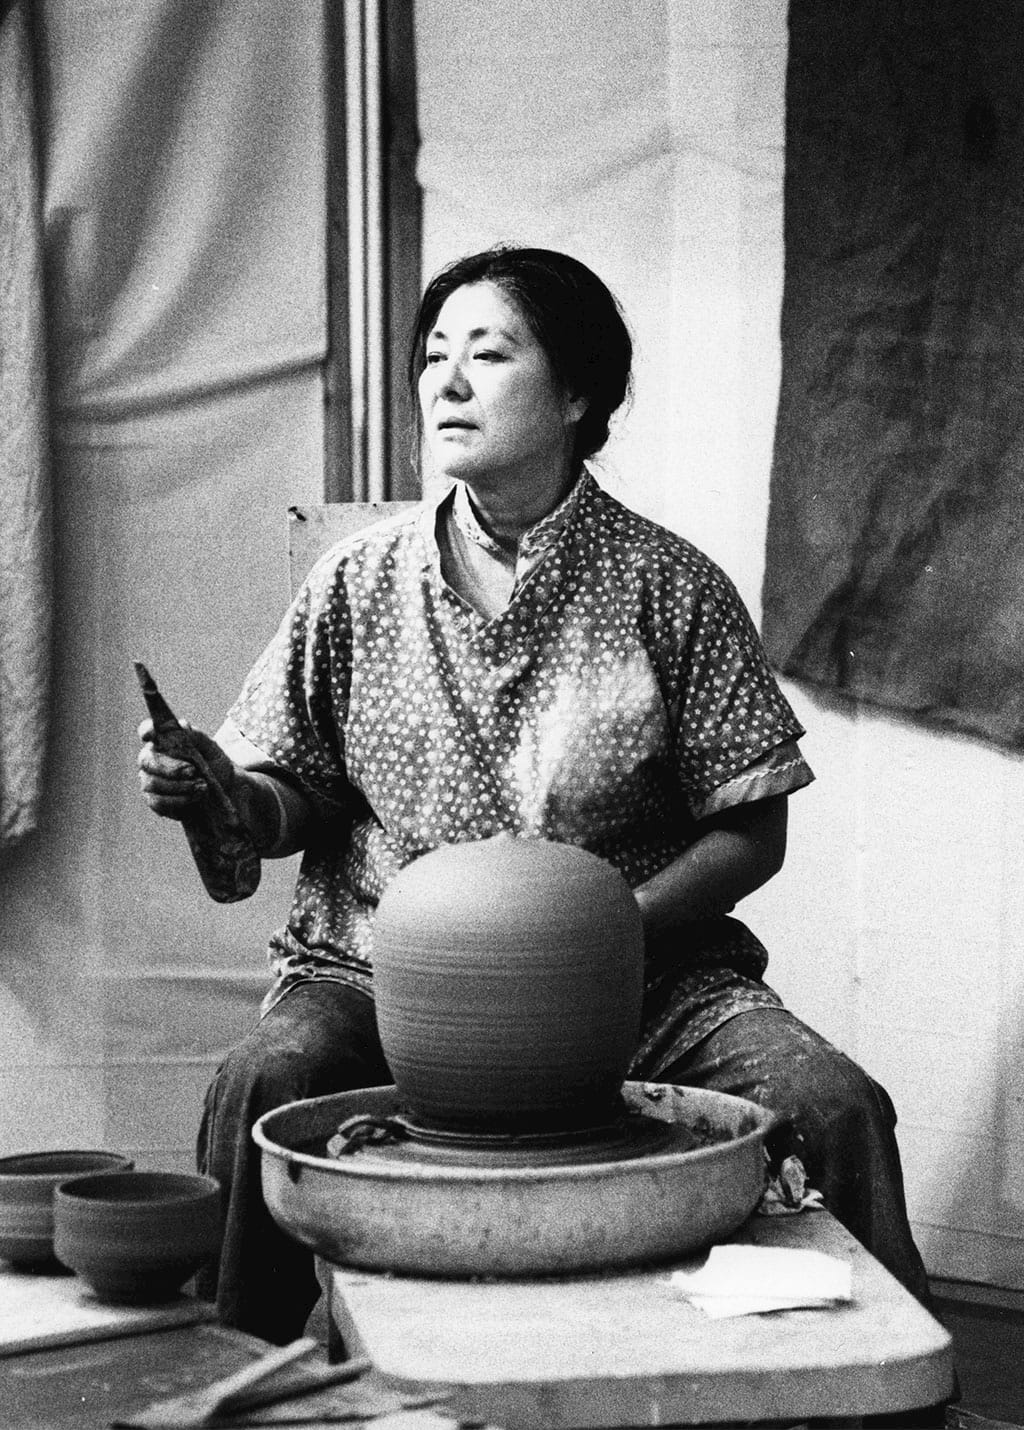 Toshiko Takaezu at the wheel. Courtesy of the American Craft Council